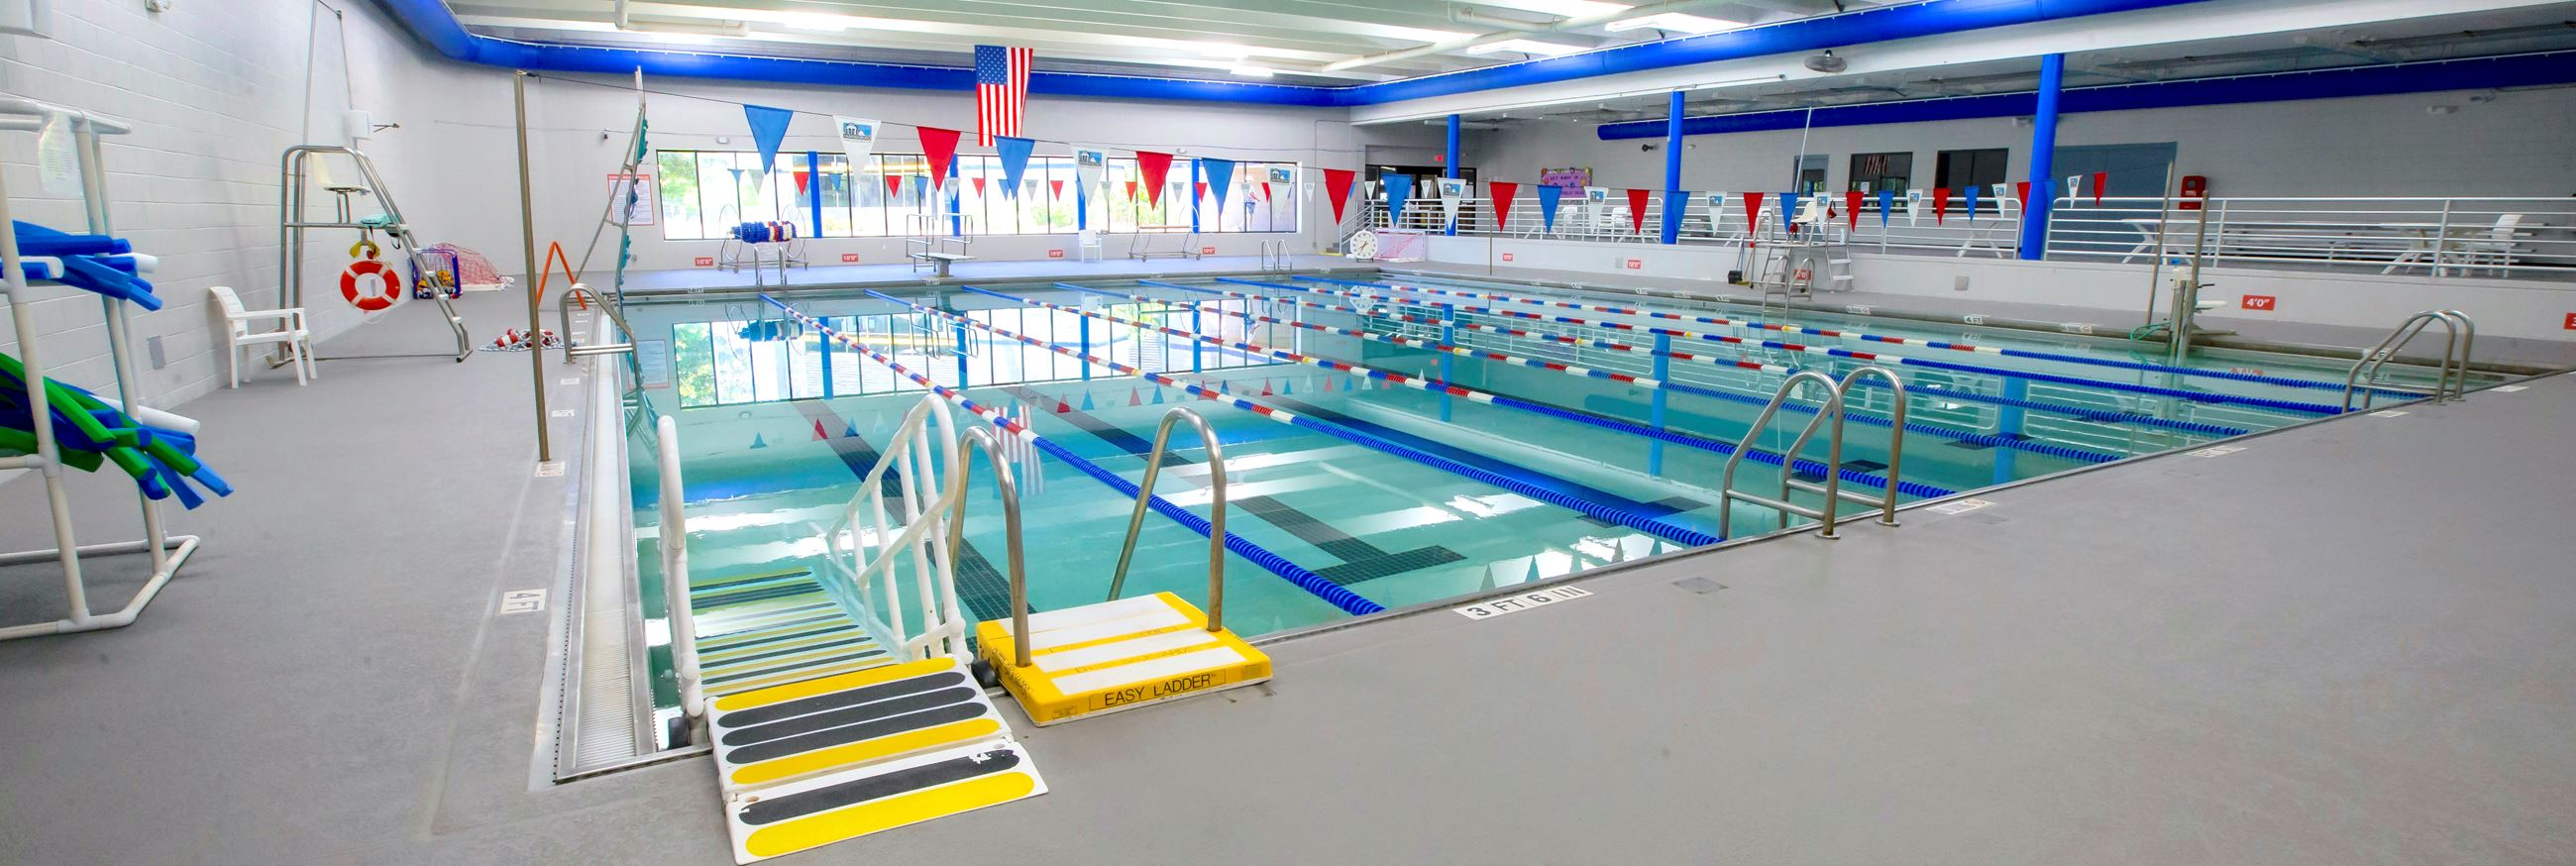 Indoor swimming pool with wheelchair ramp